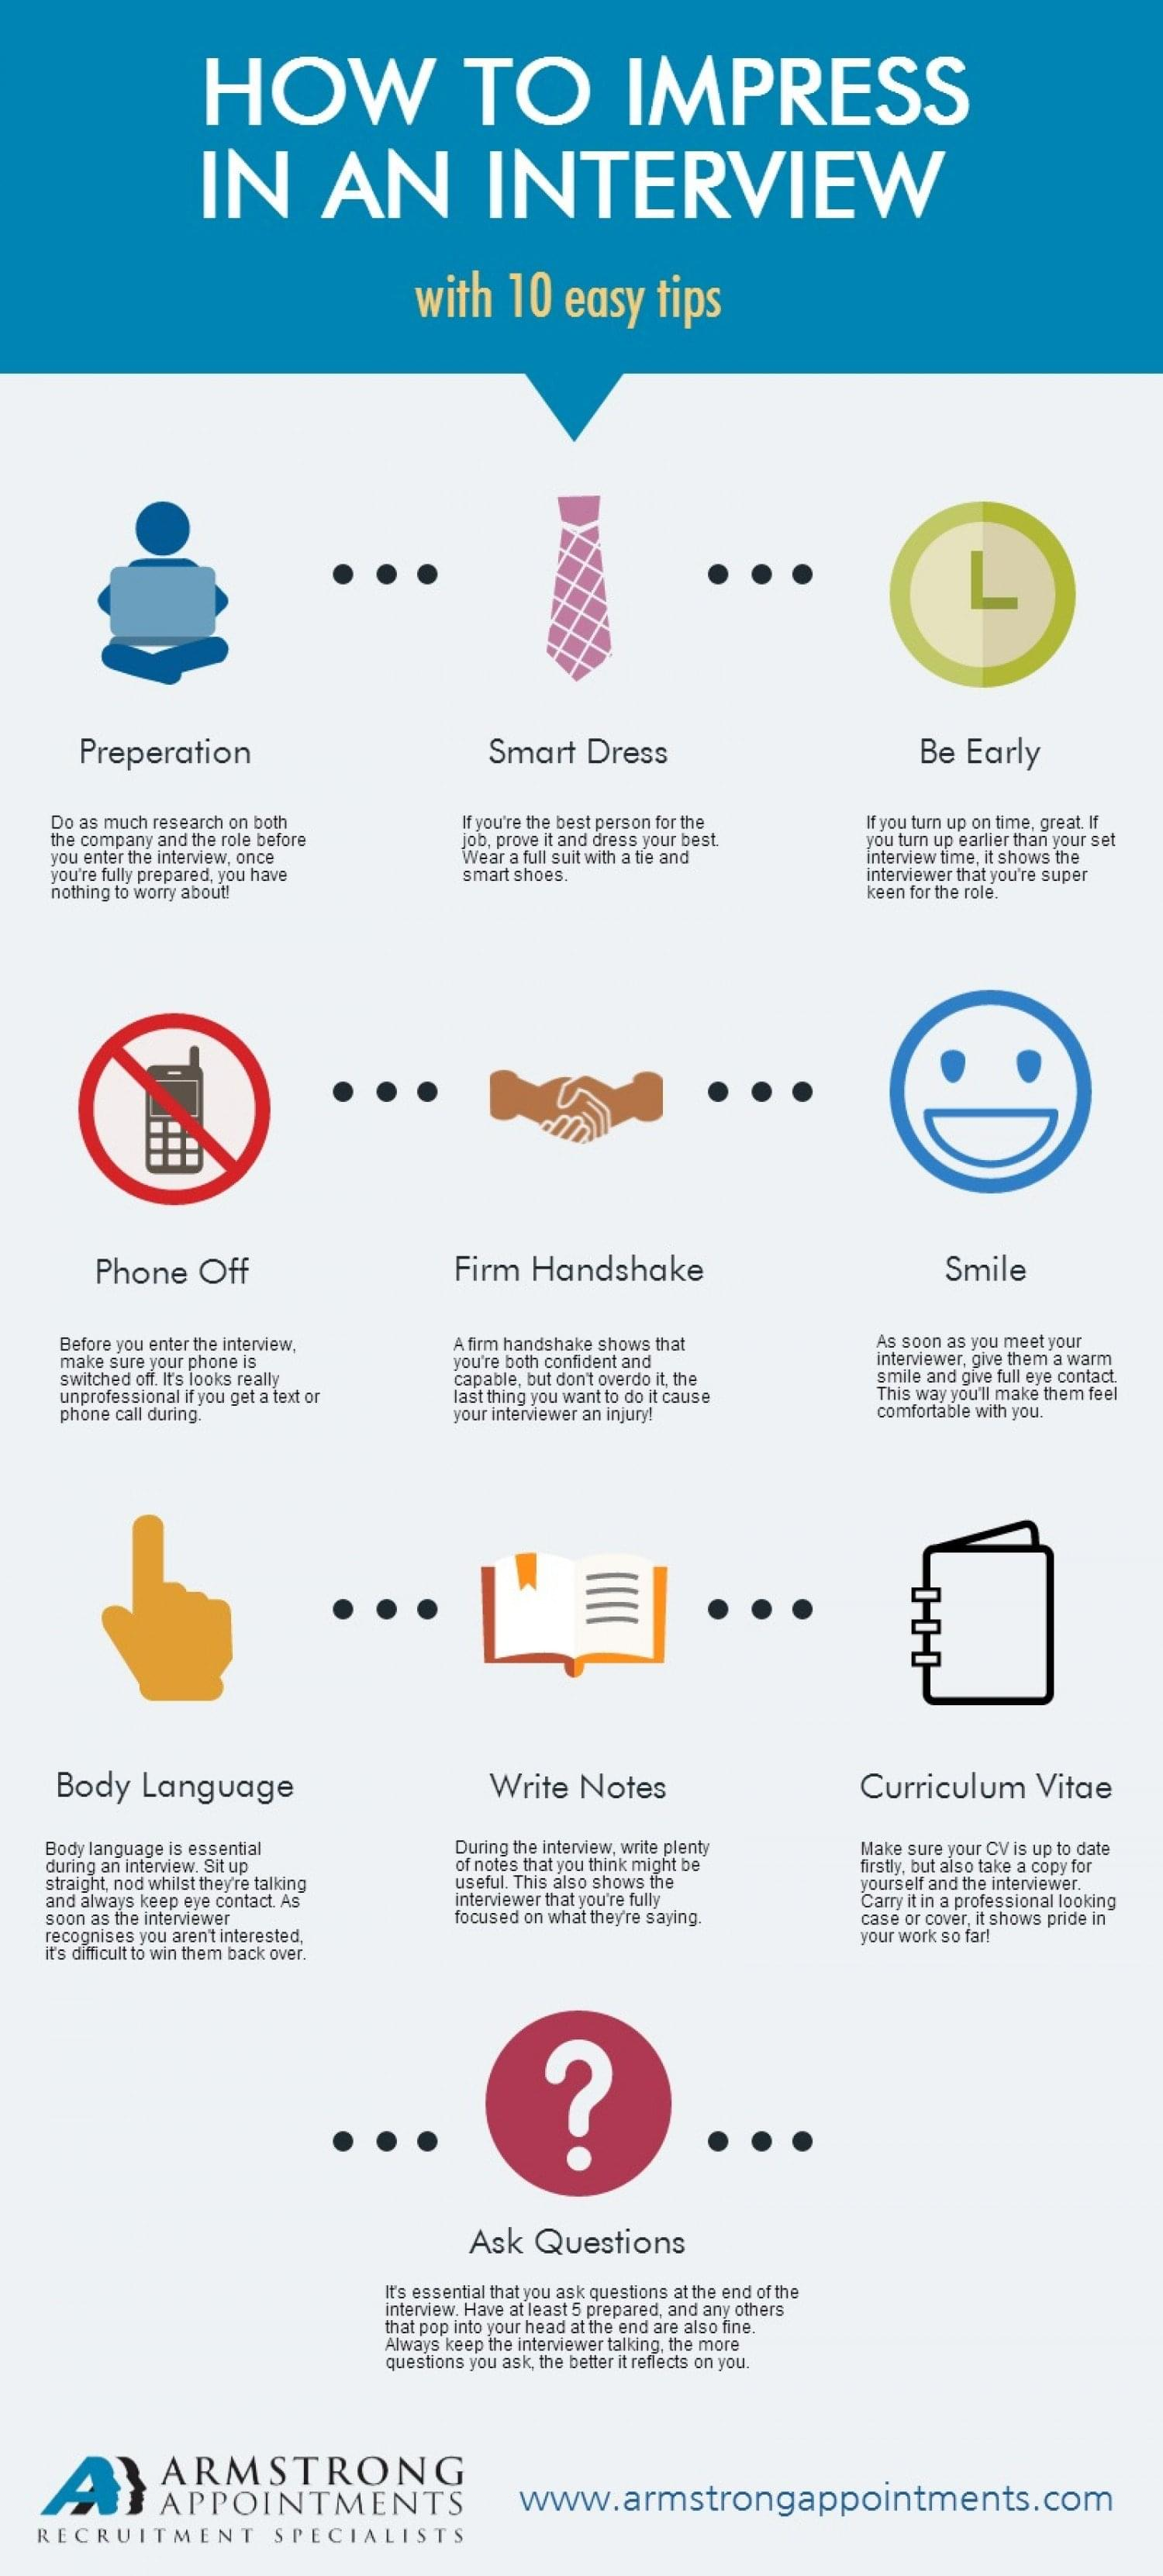 how to impress in an interview easy tips interview etiquette